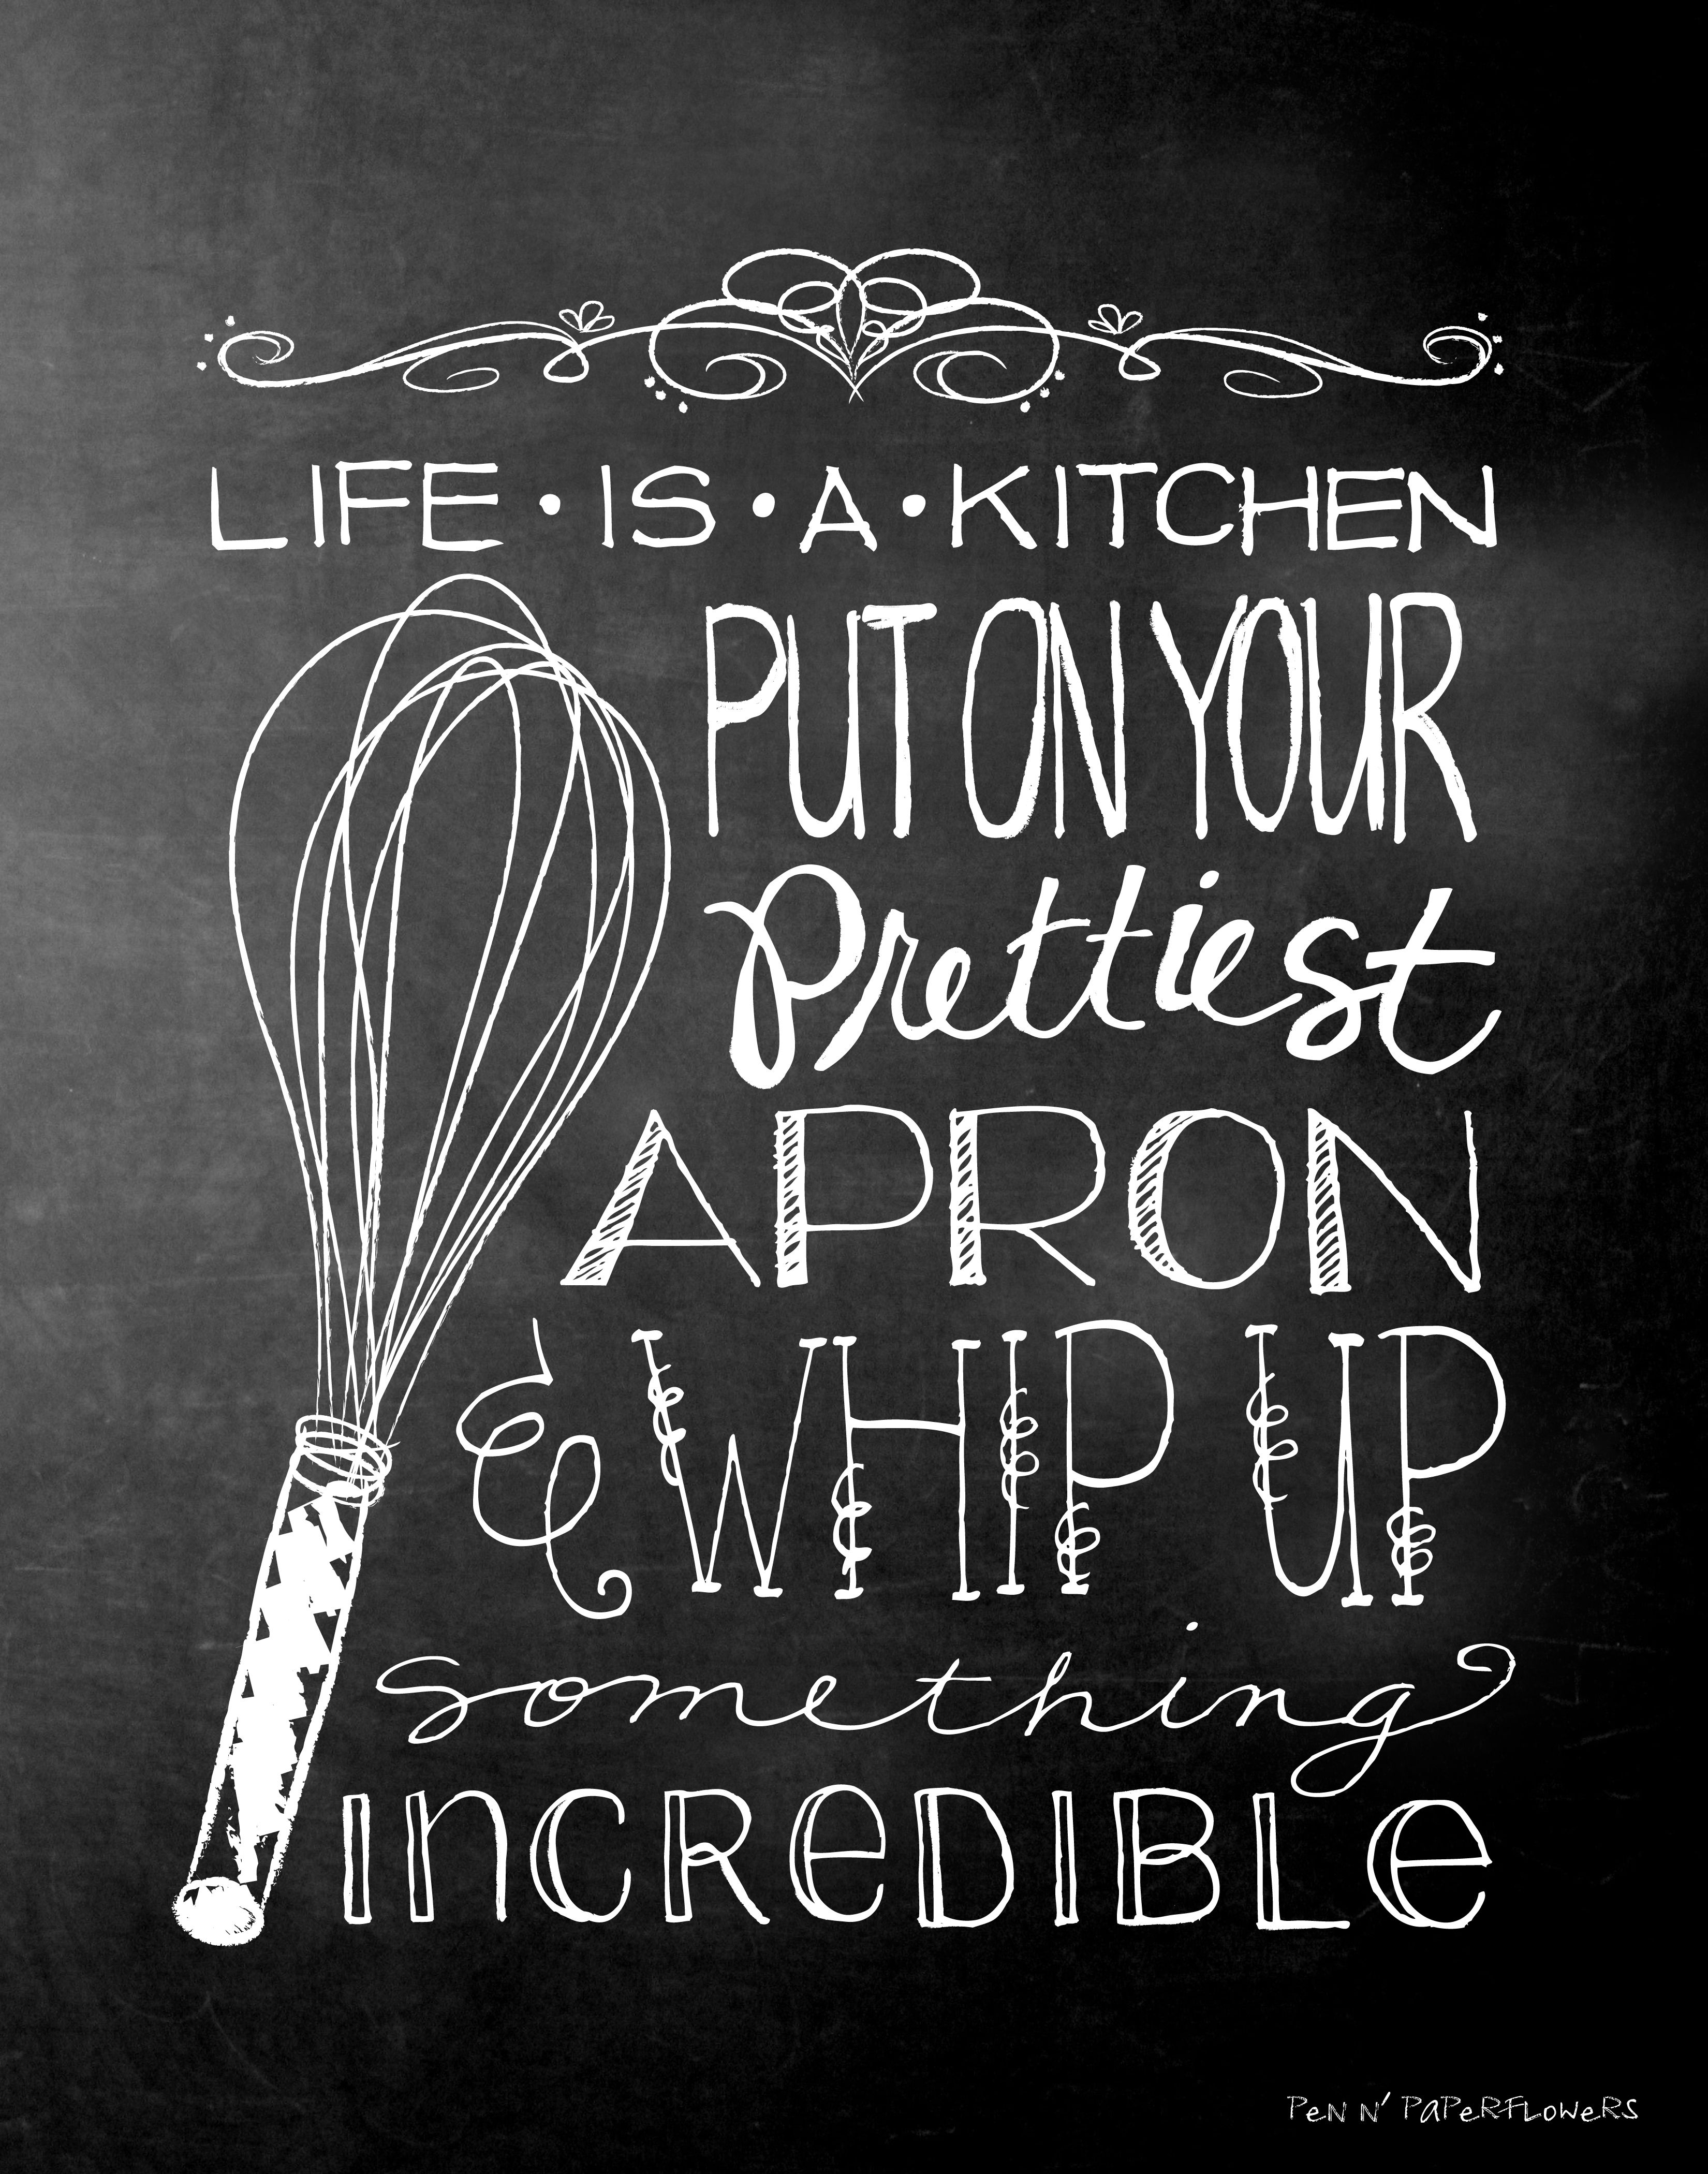 White apron quotes